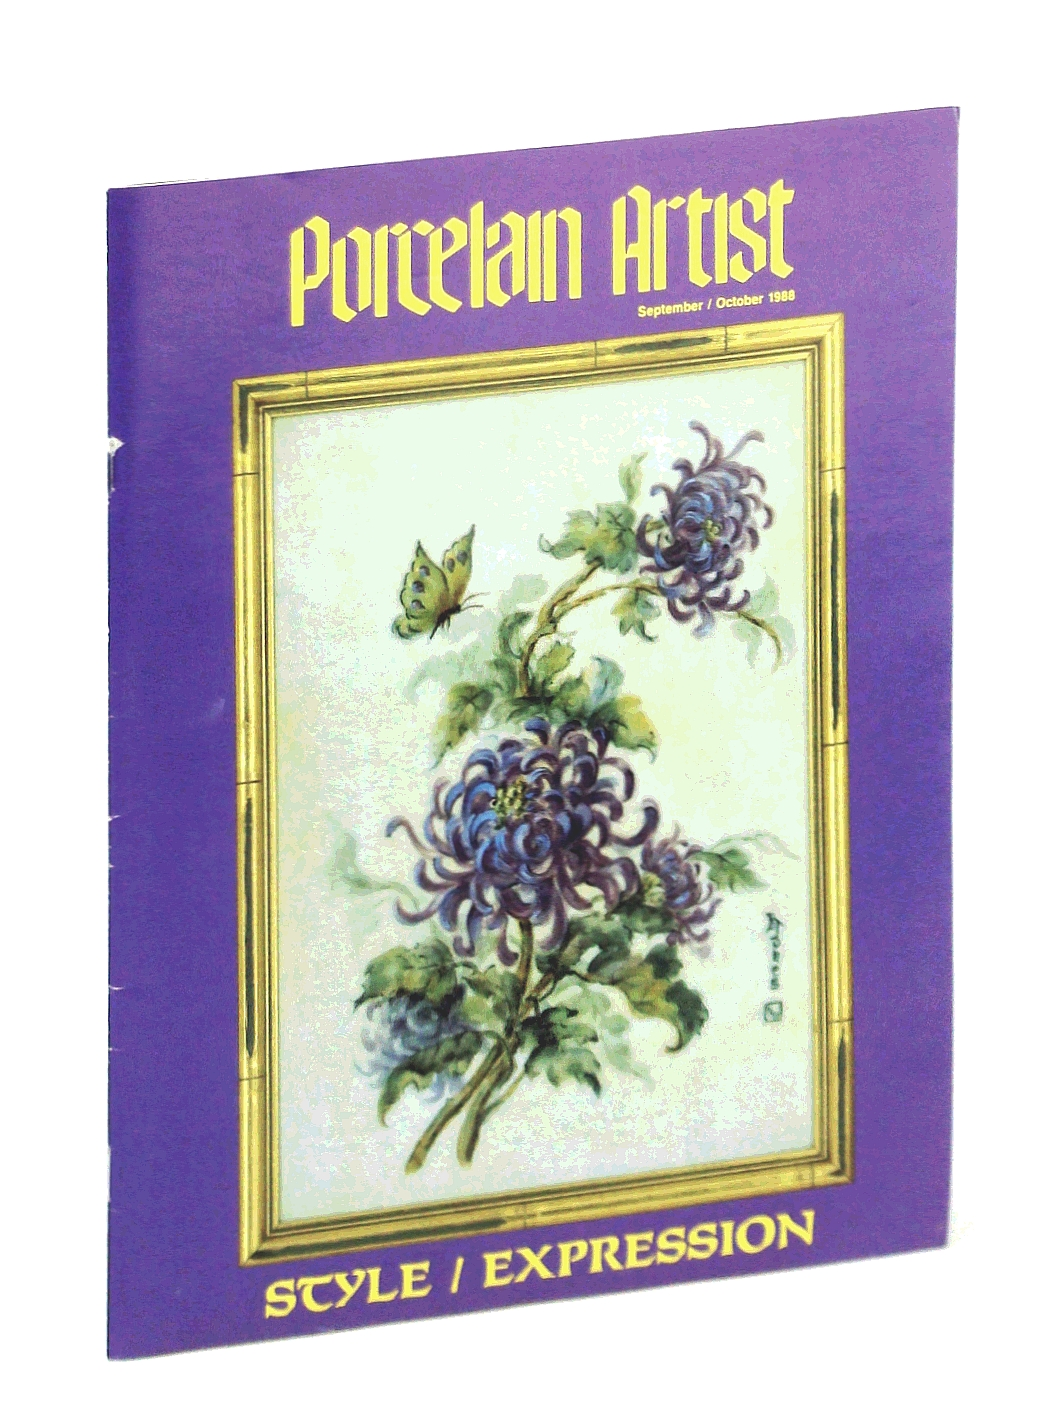 Image for Porcelain Artist [Magazine] September / October [Sept. / Oct.] 1988: Style / Expression